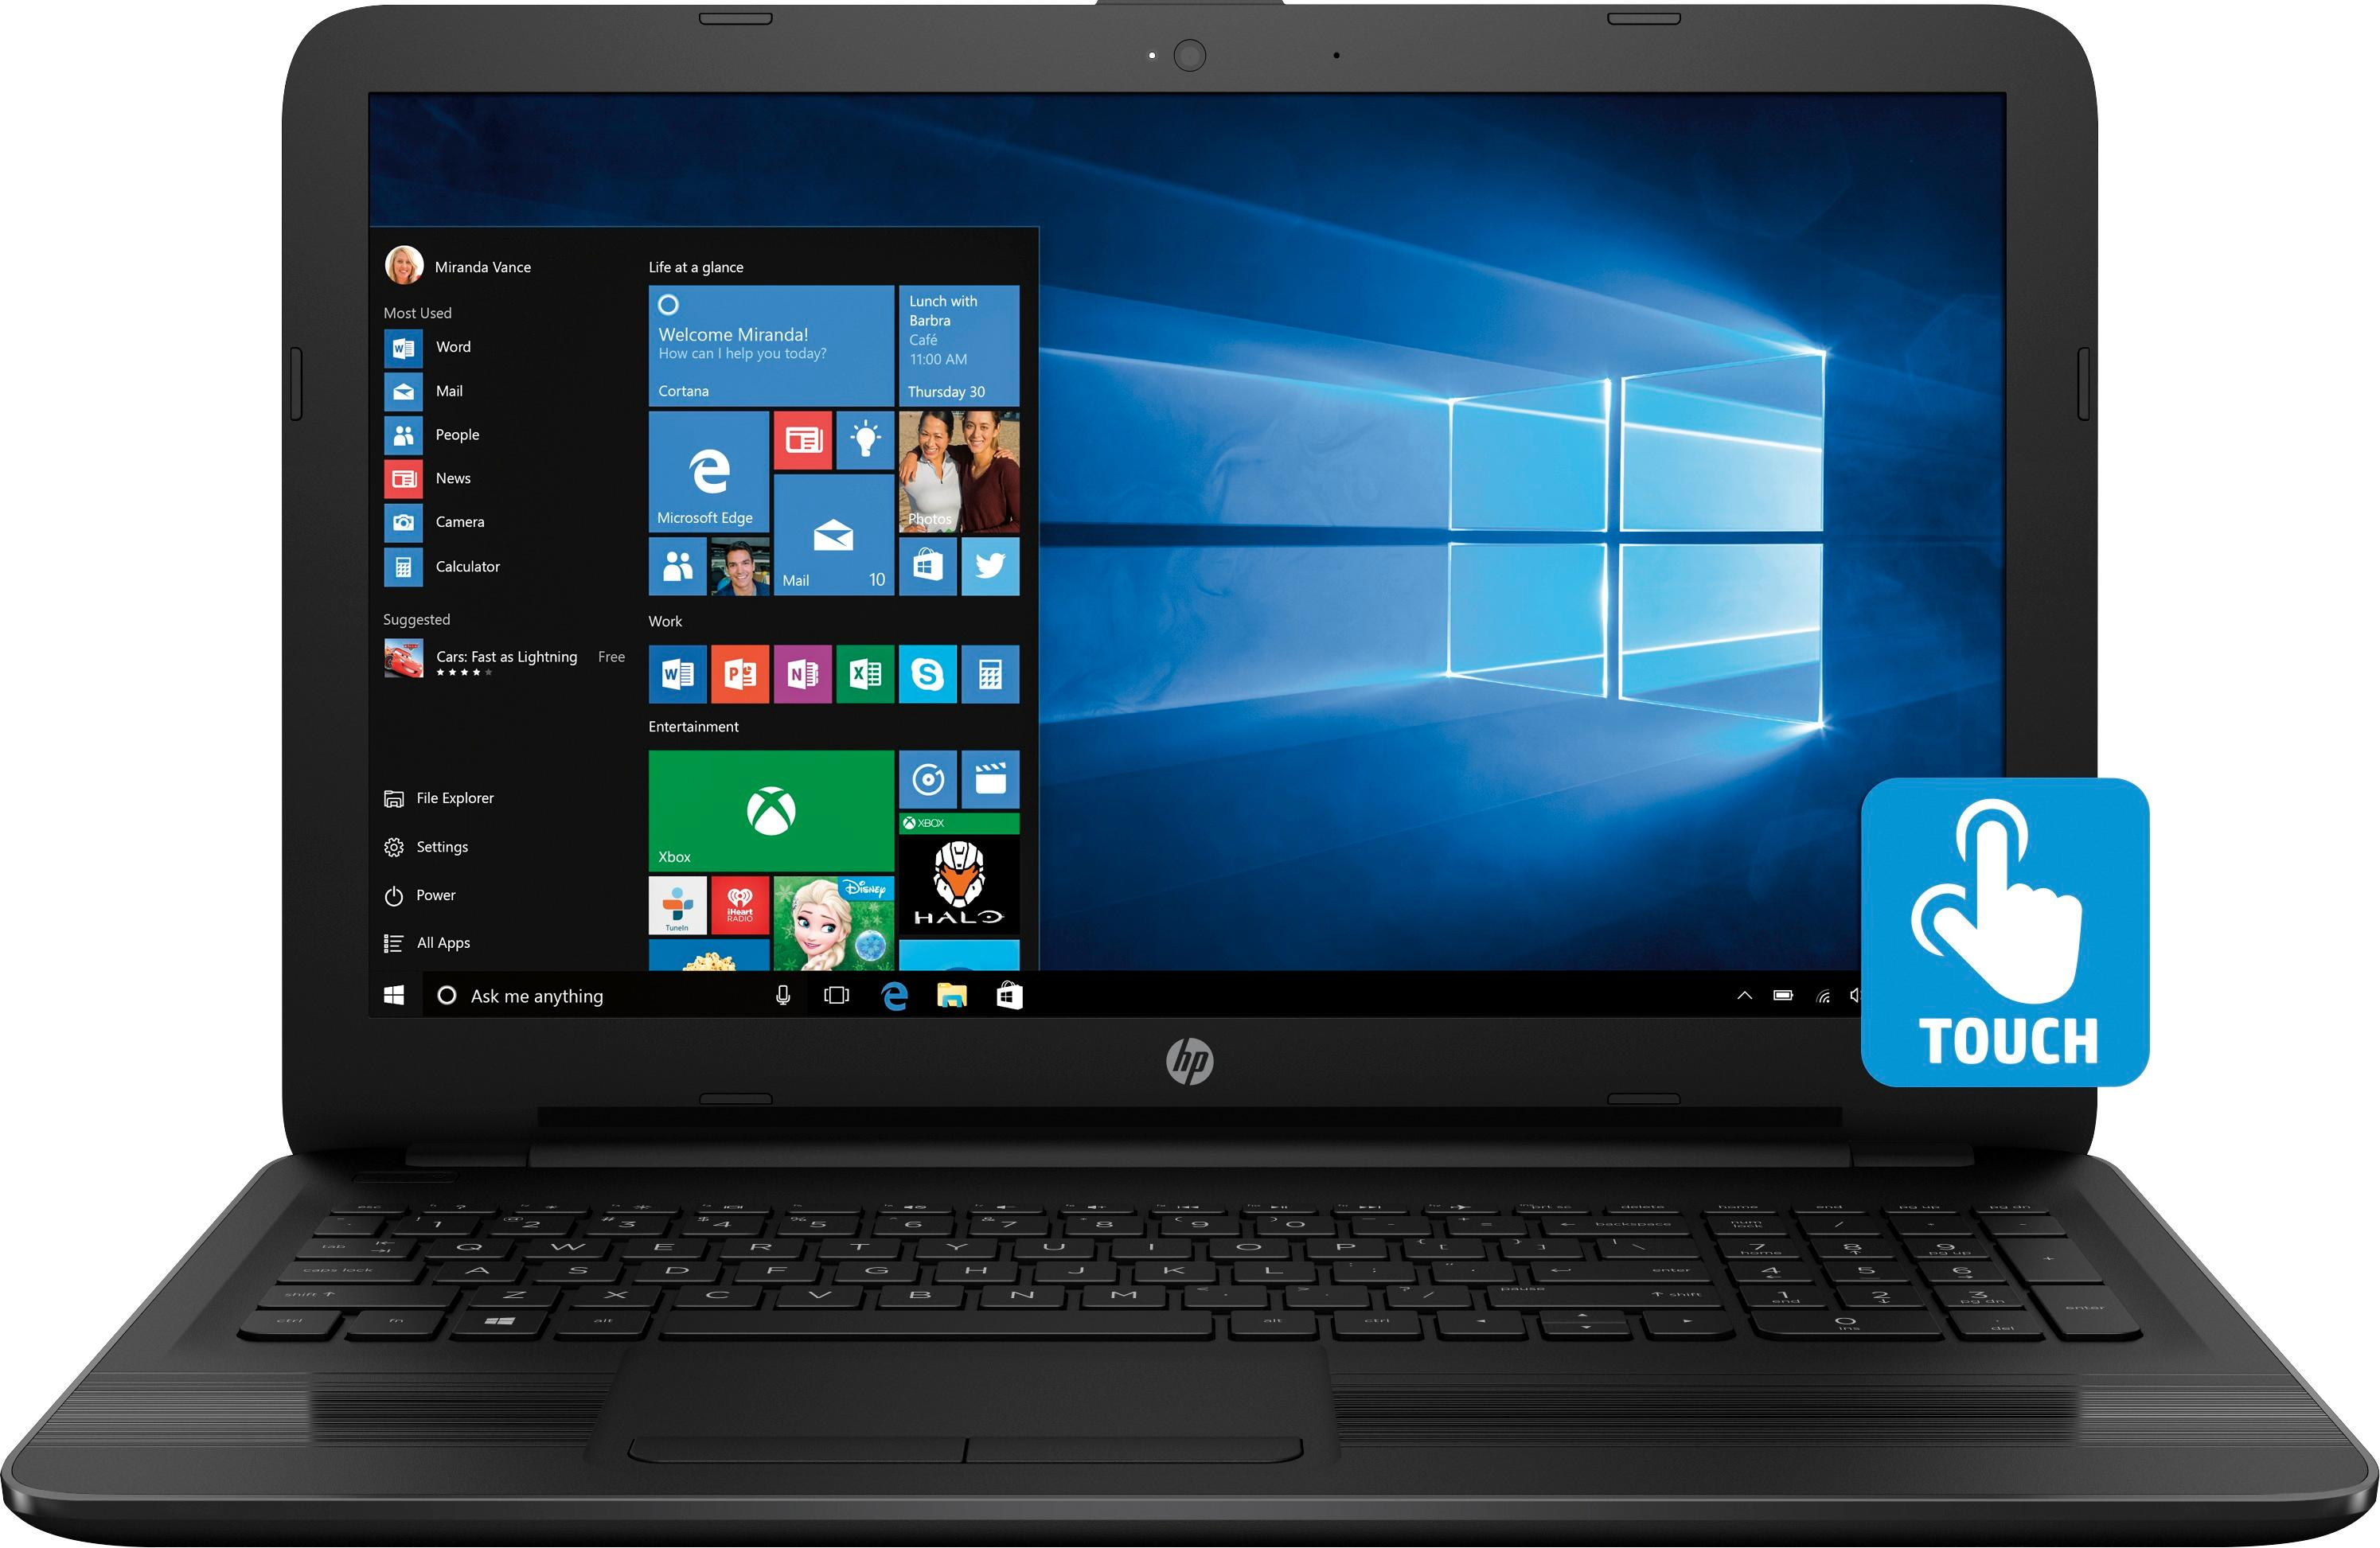 Useful Tips To Choose A Good Laptop Under 600 Dollars